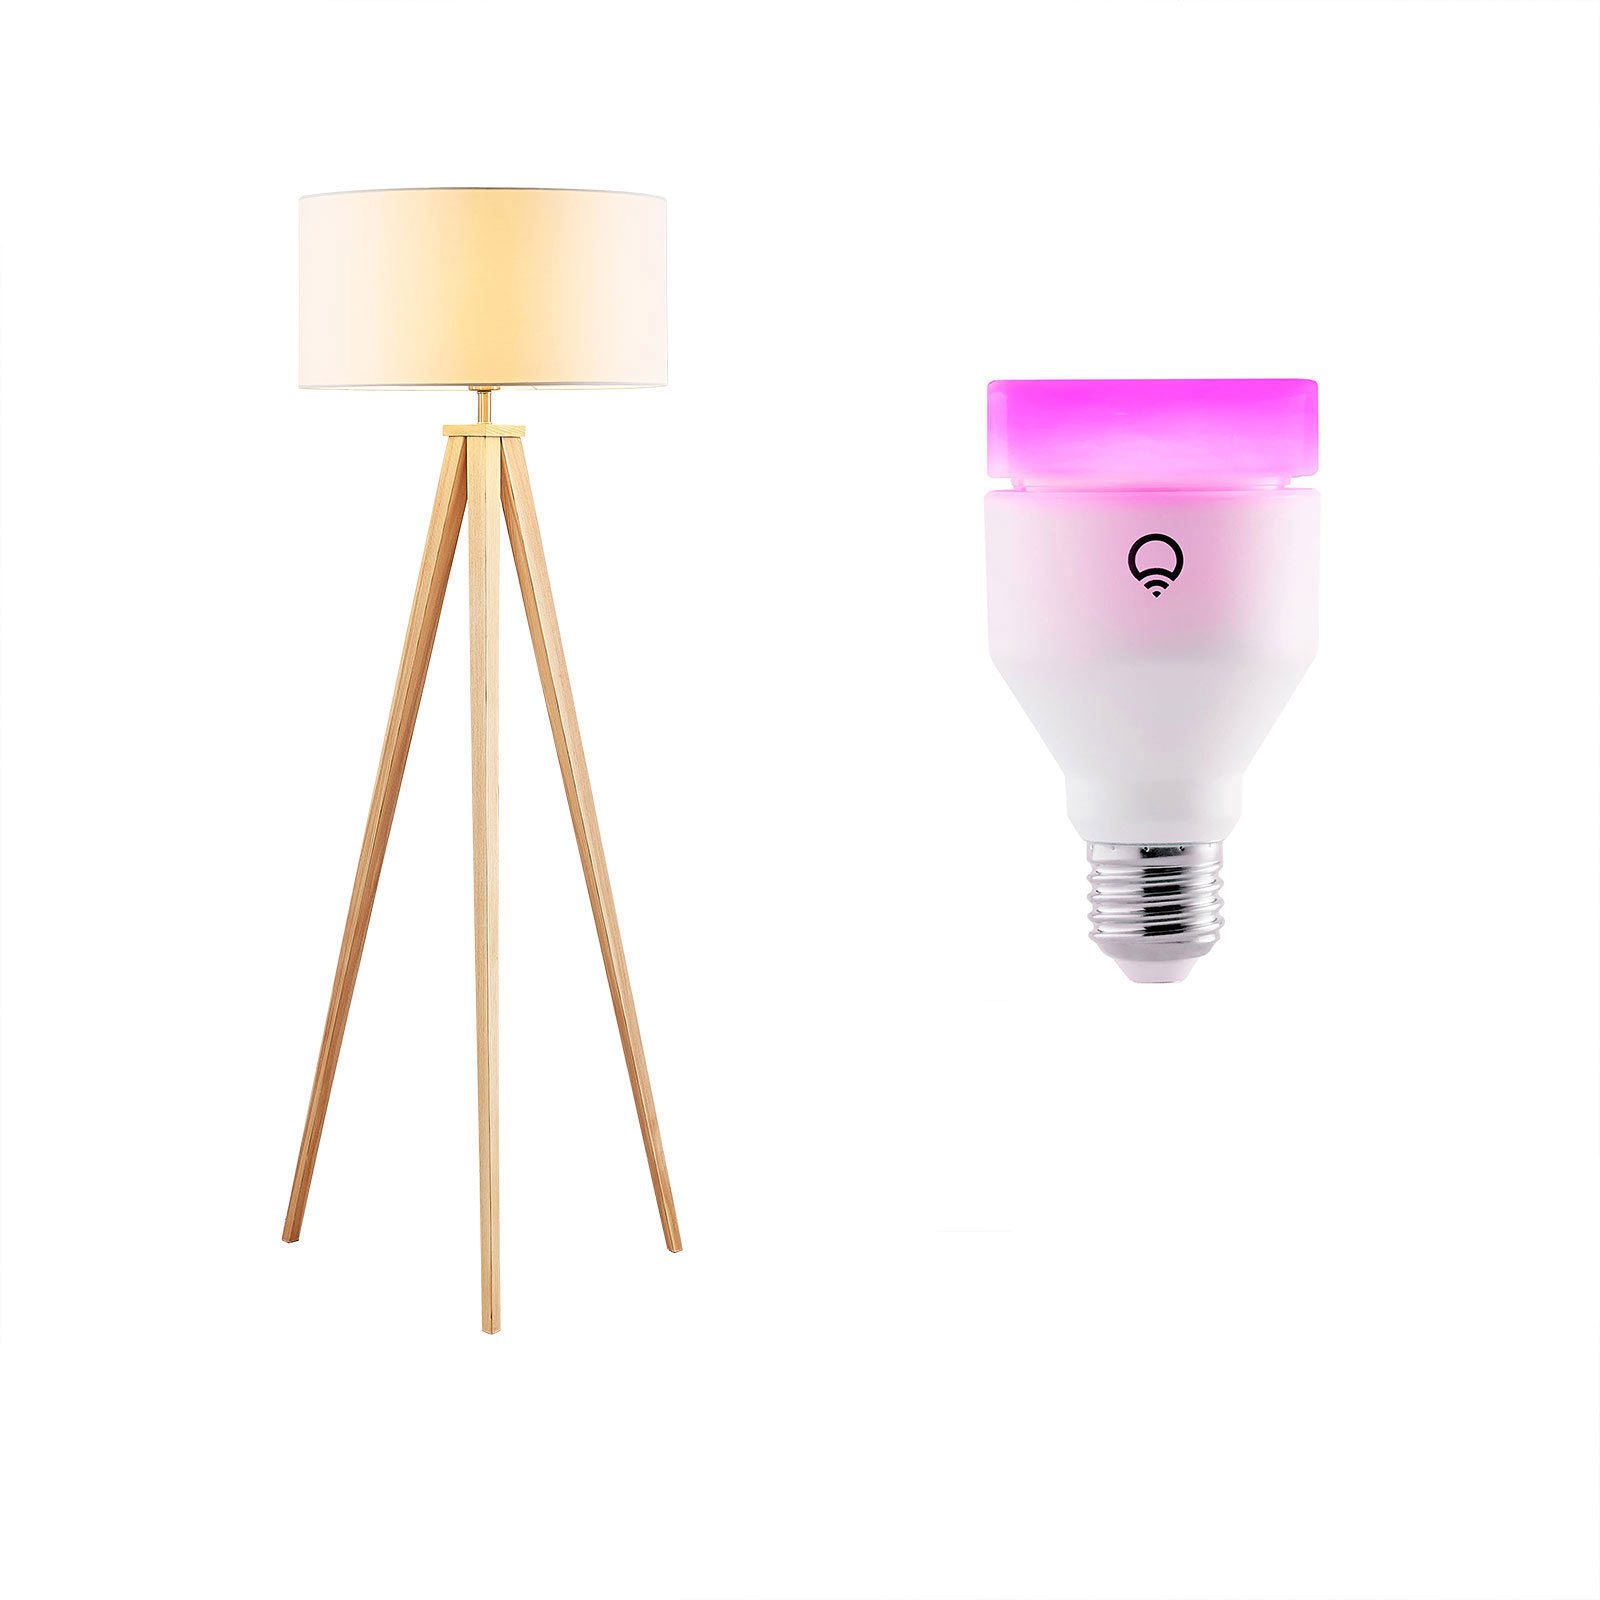 Holz-Stehleuchte Mya inklusive LIFX E27-Lampe RGBW